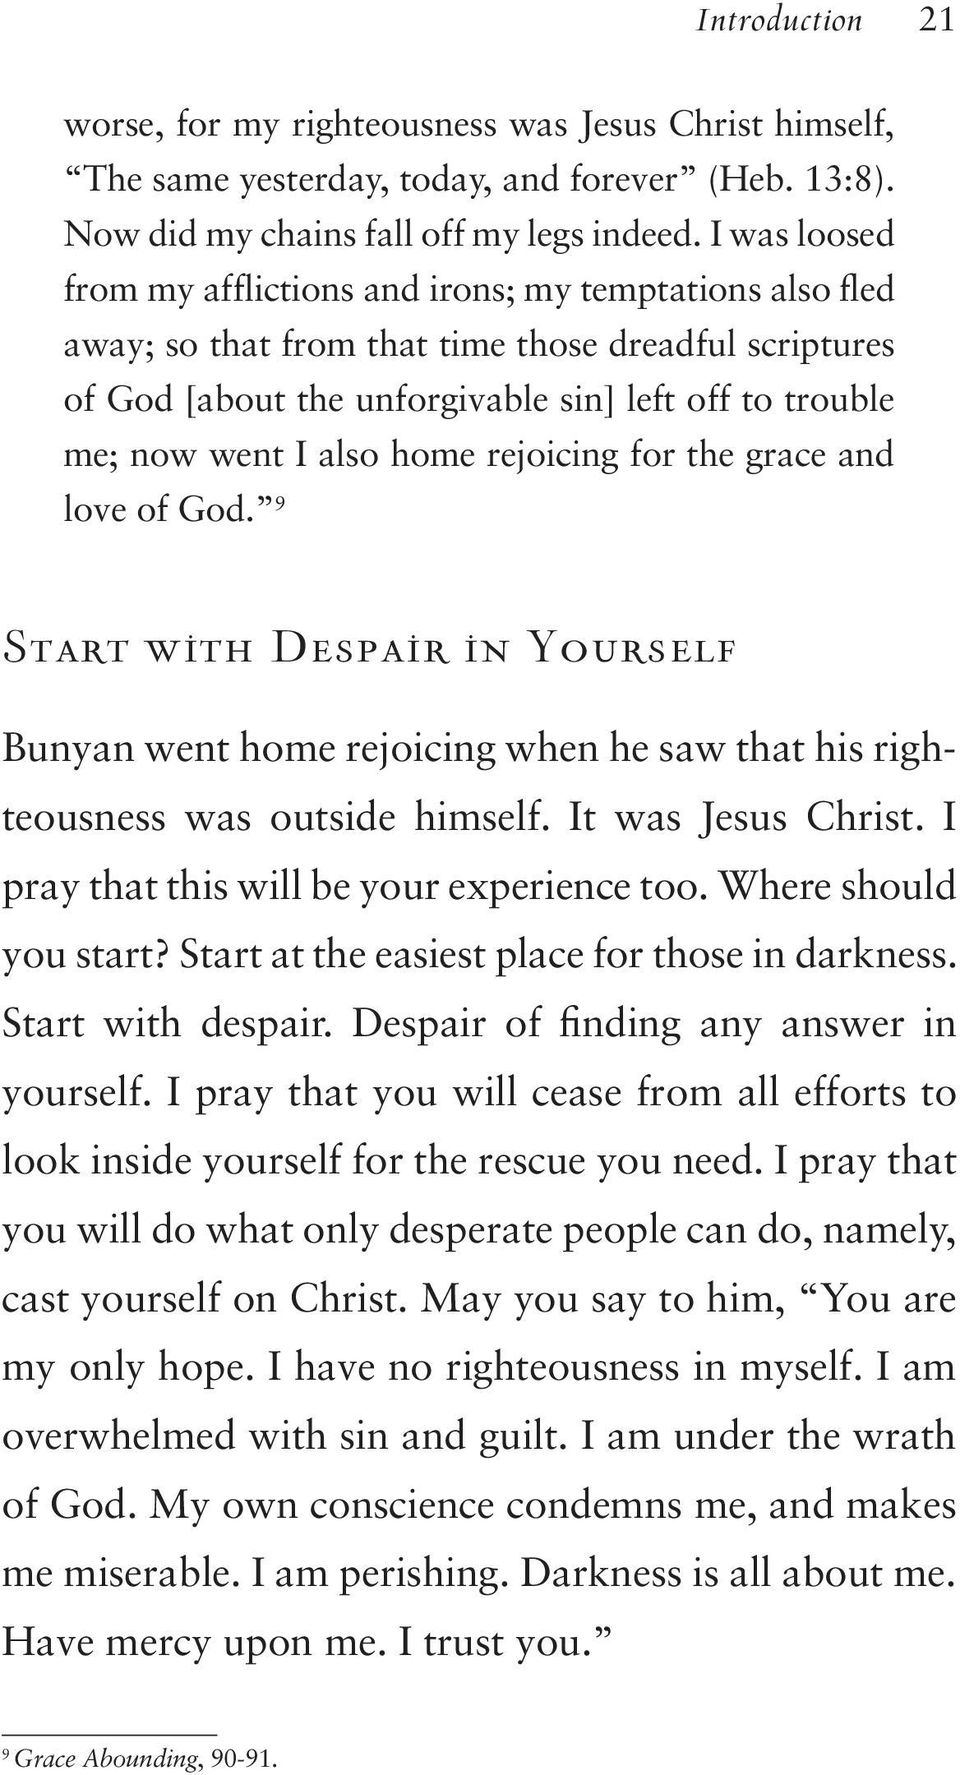 home rejoicing for the grace and love of God. 9 Start with Despair in Yourself Bunyan went home rejoicing when he saw that his righteousness was outside himself. It was Jesus Christ.